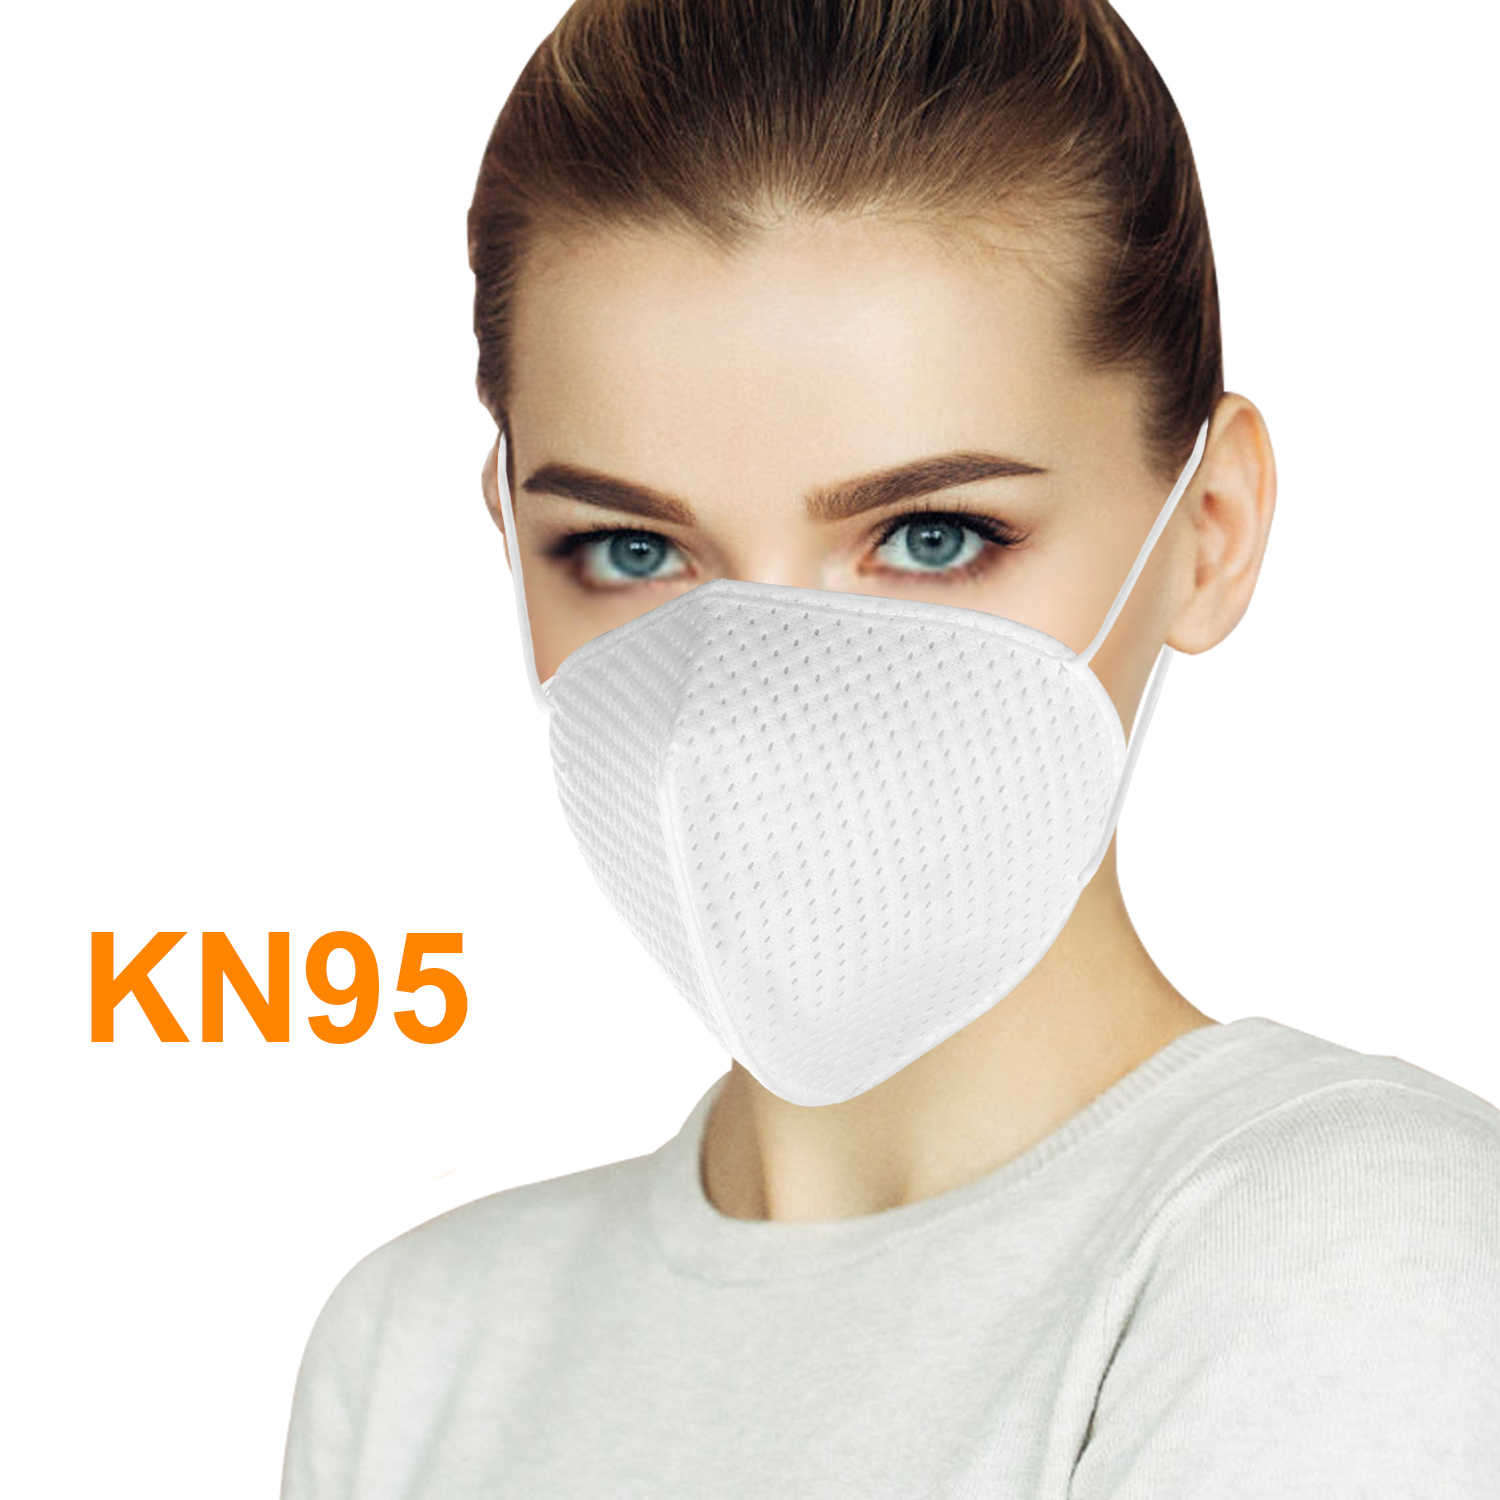 1pc Outdoor Cycling Face Mask KN95 Face Mask 4-Layer Filter Soft Breathable Respirator Protective Mask Filtering 95% Particles